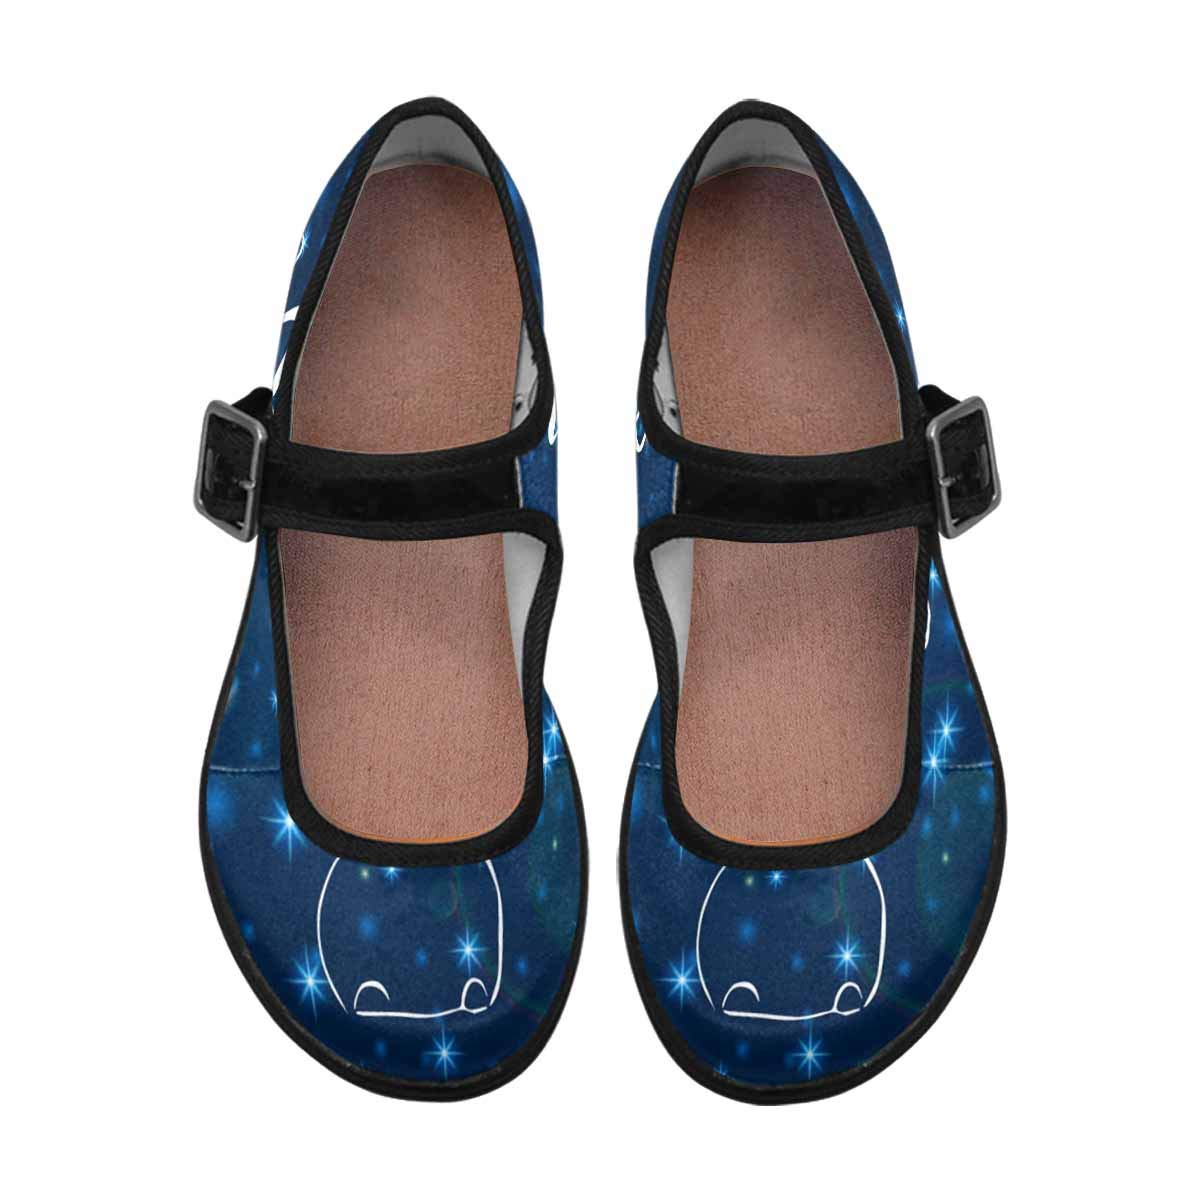 INTERESTPRINT Womens Slip-Resistant Mary Jane Flats for Dr Happy New Year Scholls Merry Christmas